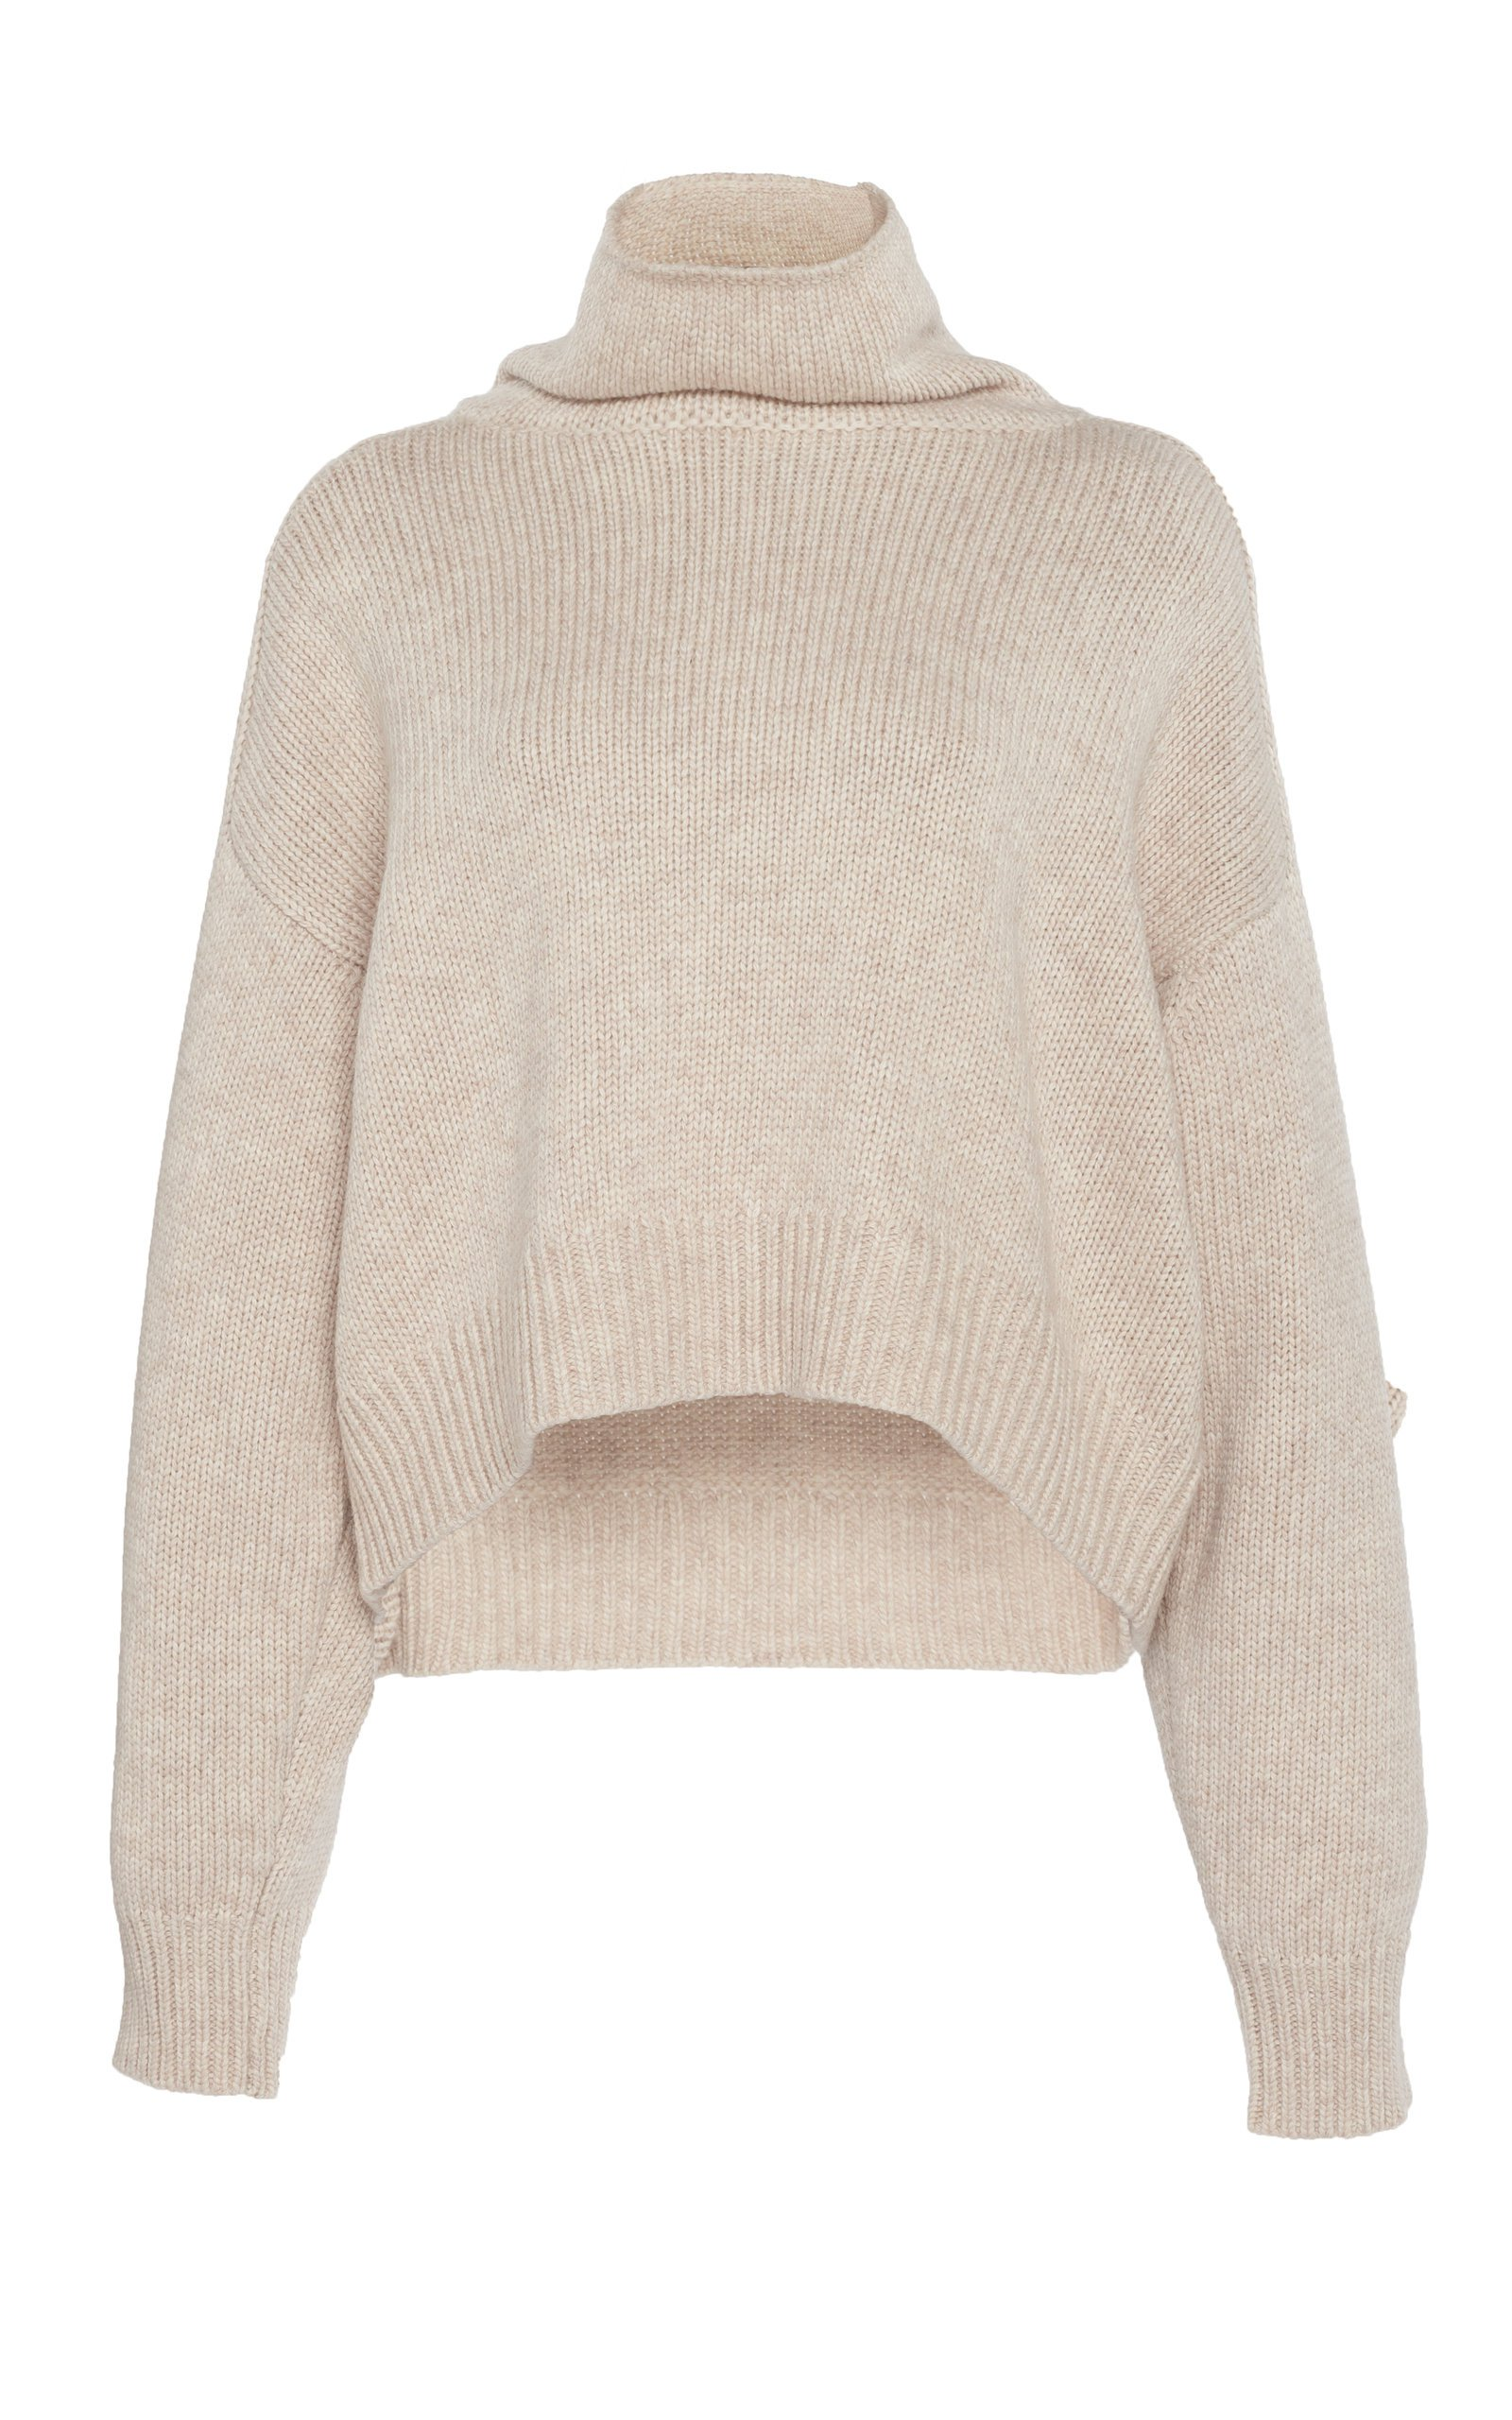 Loulou Studio Procida Wool-Blend Turtleneck Sweater Size: M